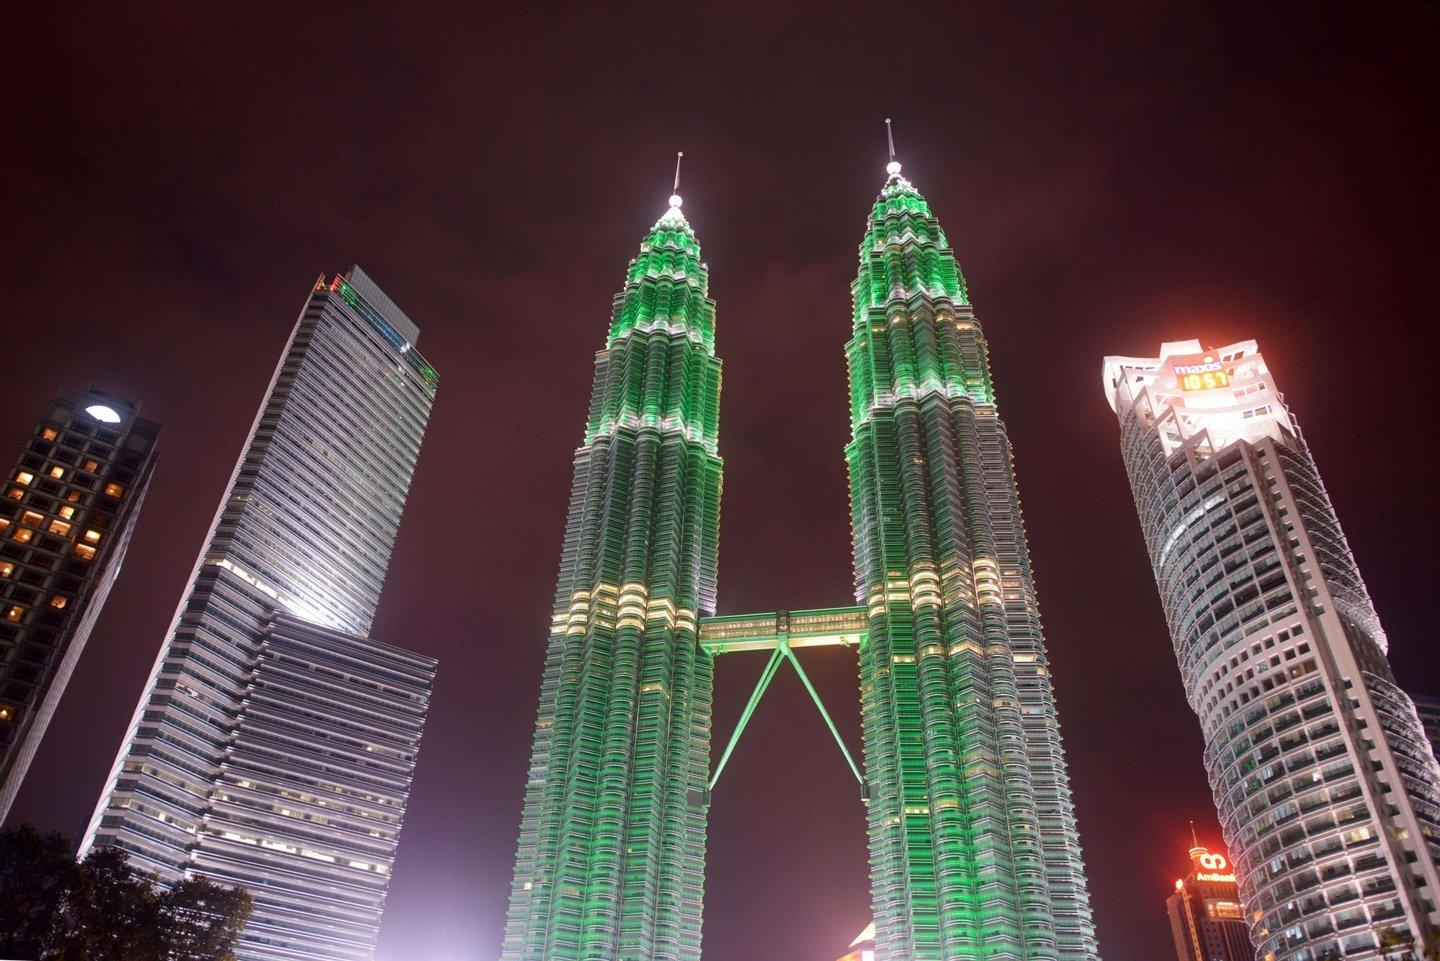 A general view shows the lights of the Petronas towers in Kuala Lumpur before being switched off for earth hour on March 29, 2014. Lights went off in thousands of cities and towns across the world on for the annual Earth Hour campaign, which is aiming to raise money via the Internet for local environmental projects. AFP PHOTO / Ed Jones        (Photo credit should read ED JONES/AFP/Getty Images)